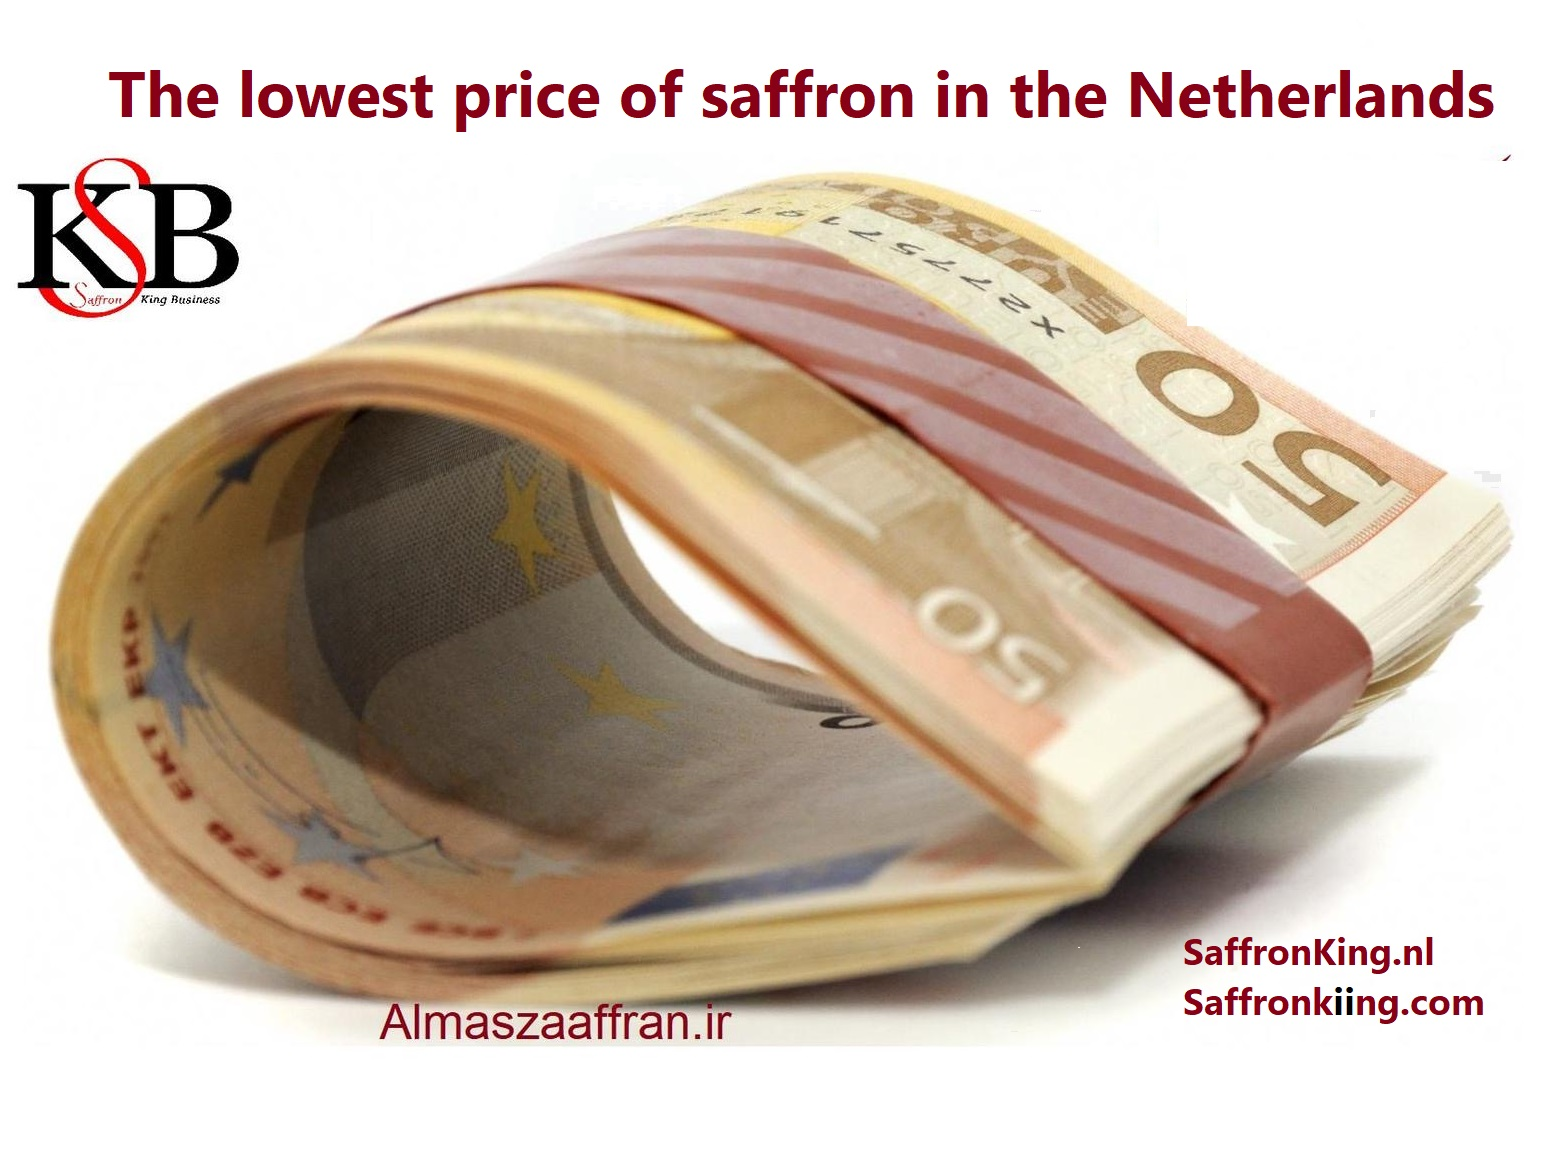 The lowest price of saffron in the Netherlands